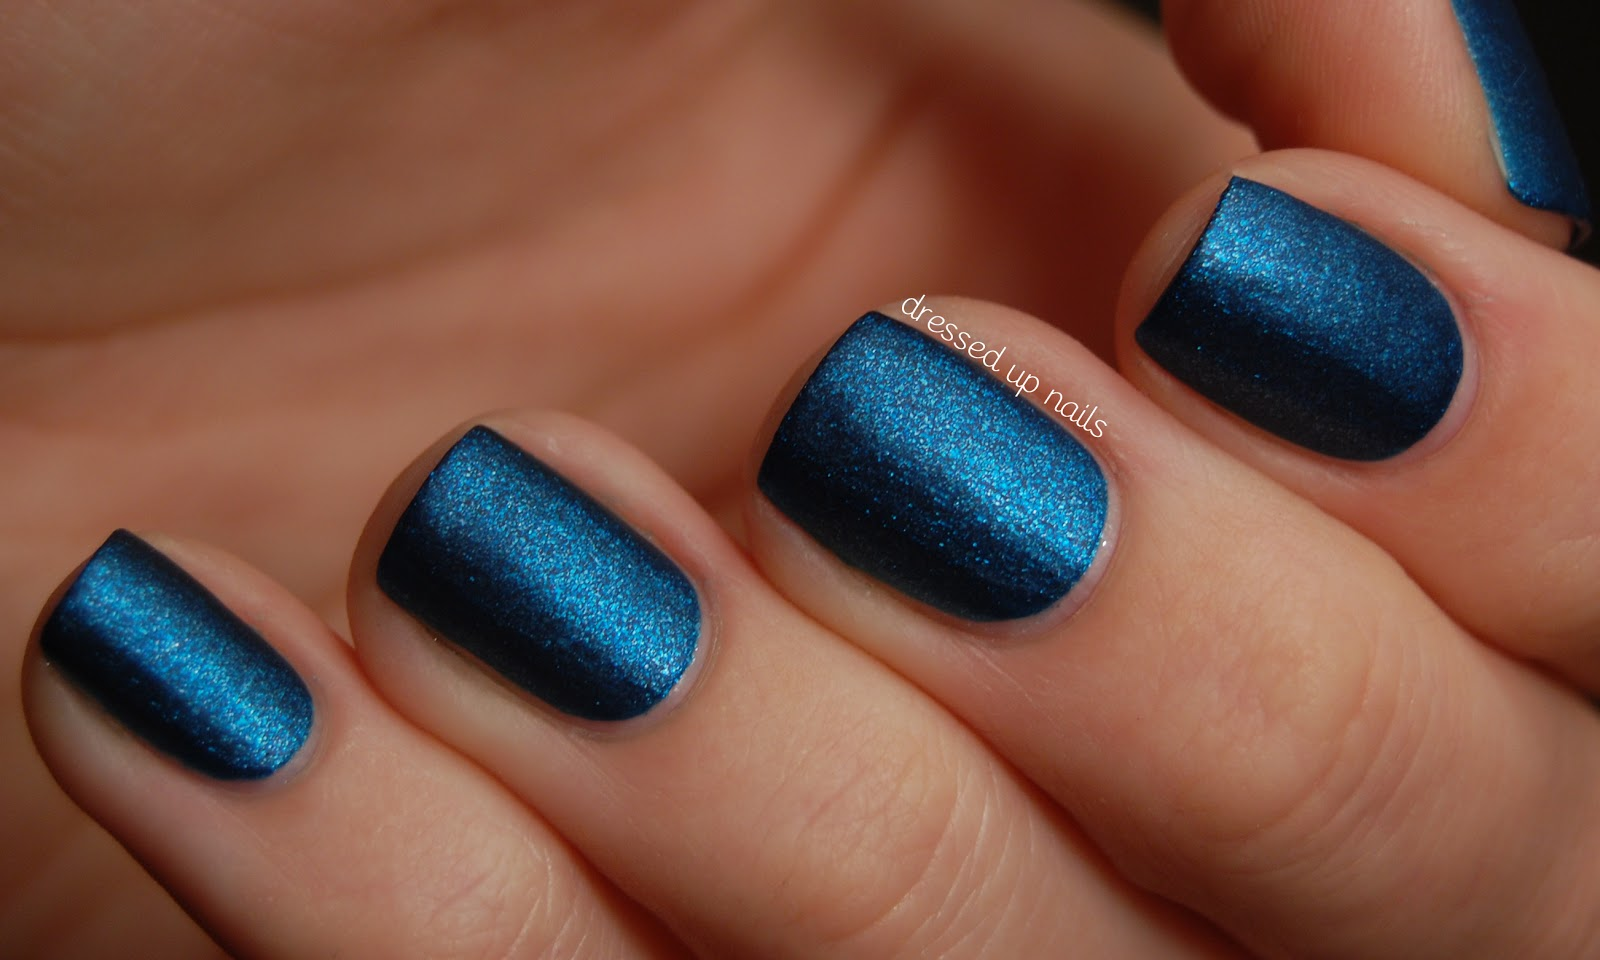 blue nail polish designs - Tire.driveeasy.co